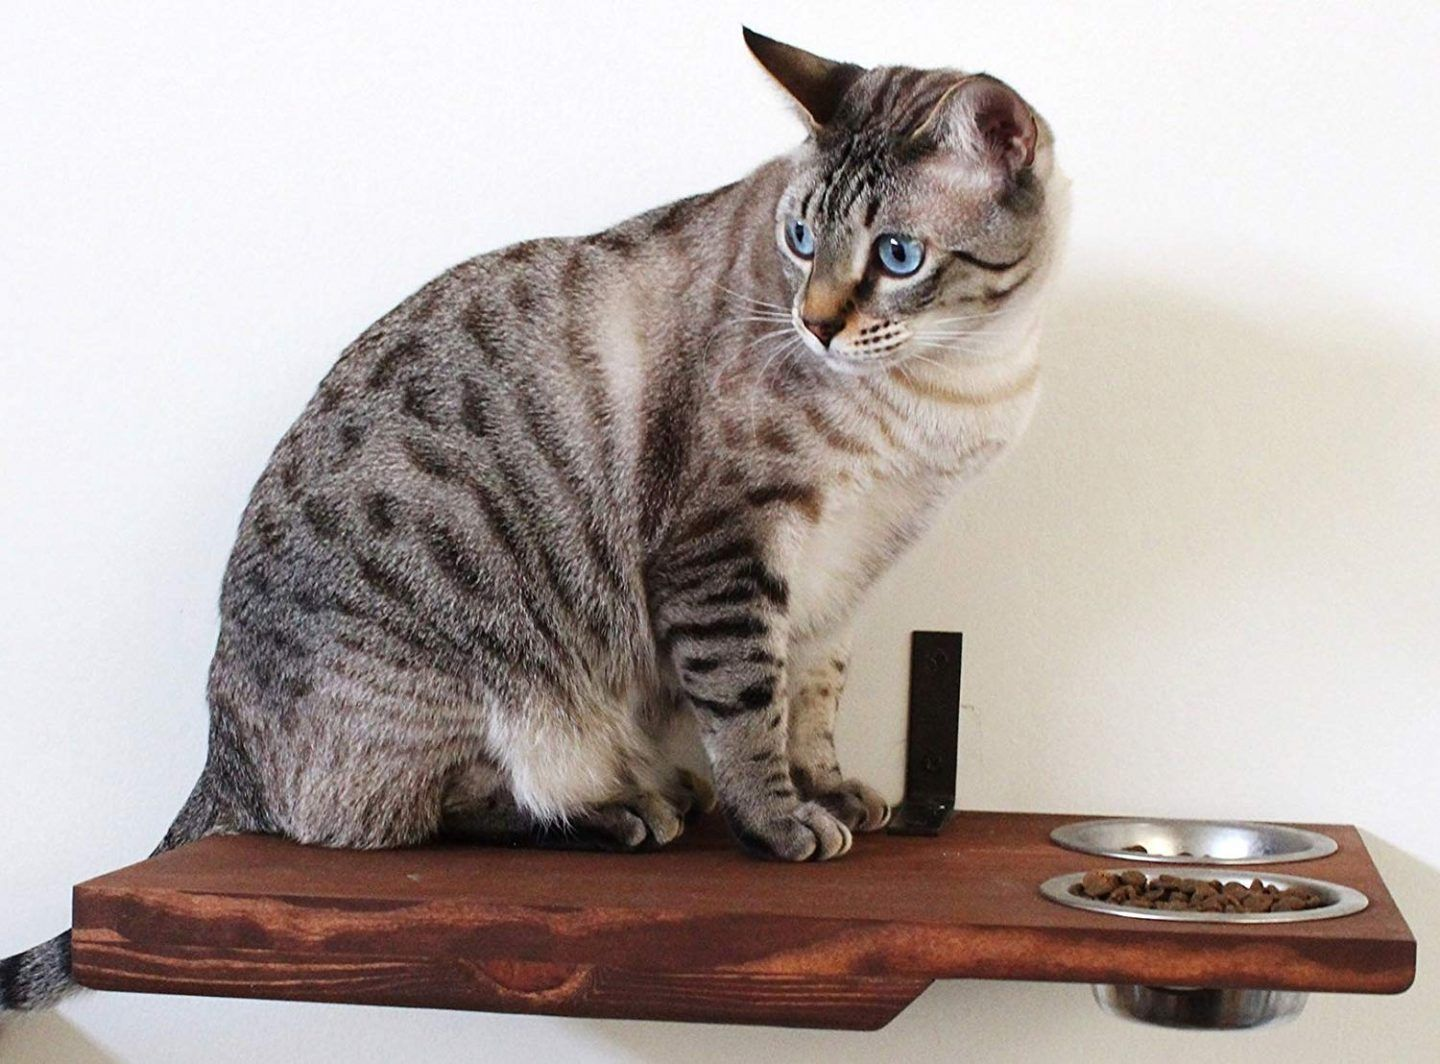 Solid wood cat wall perch with feeding station for cats